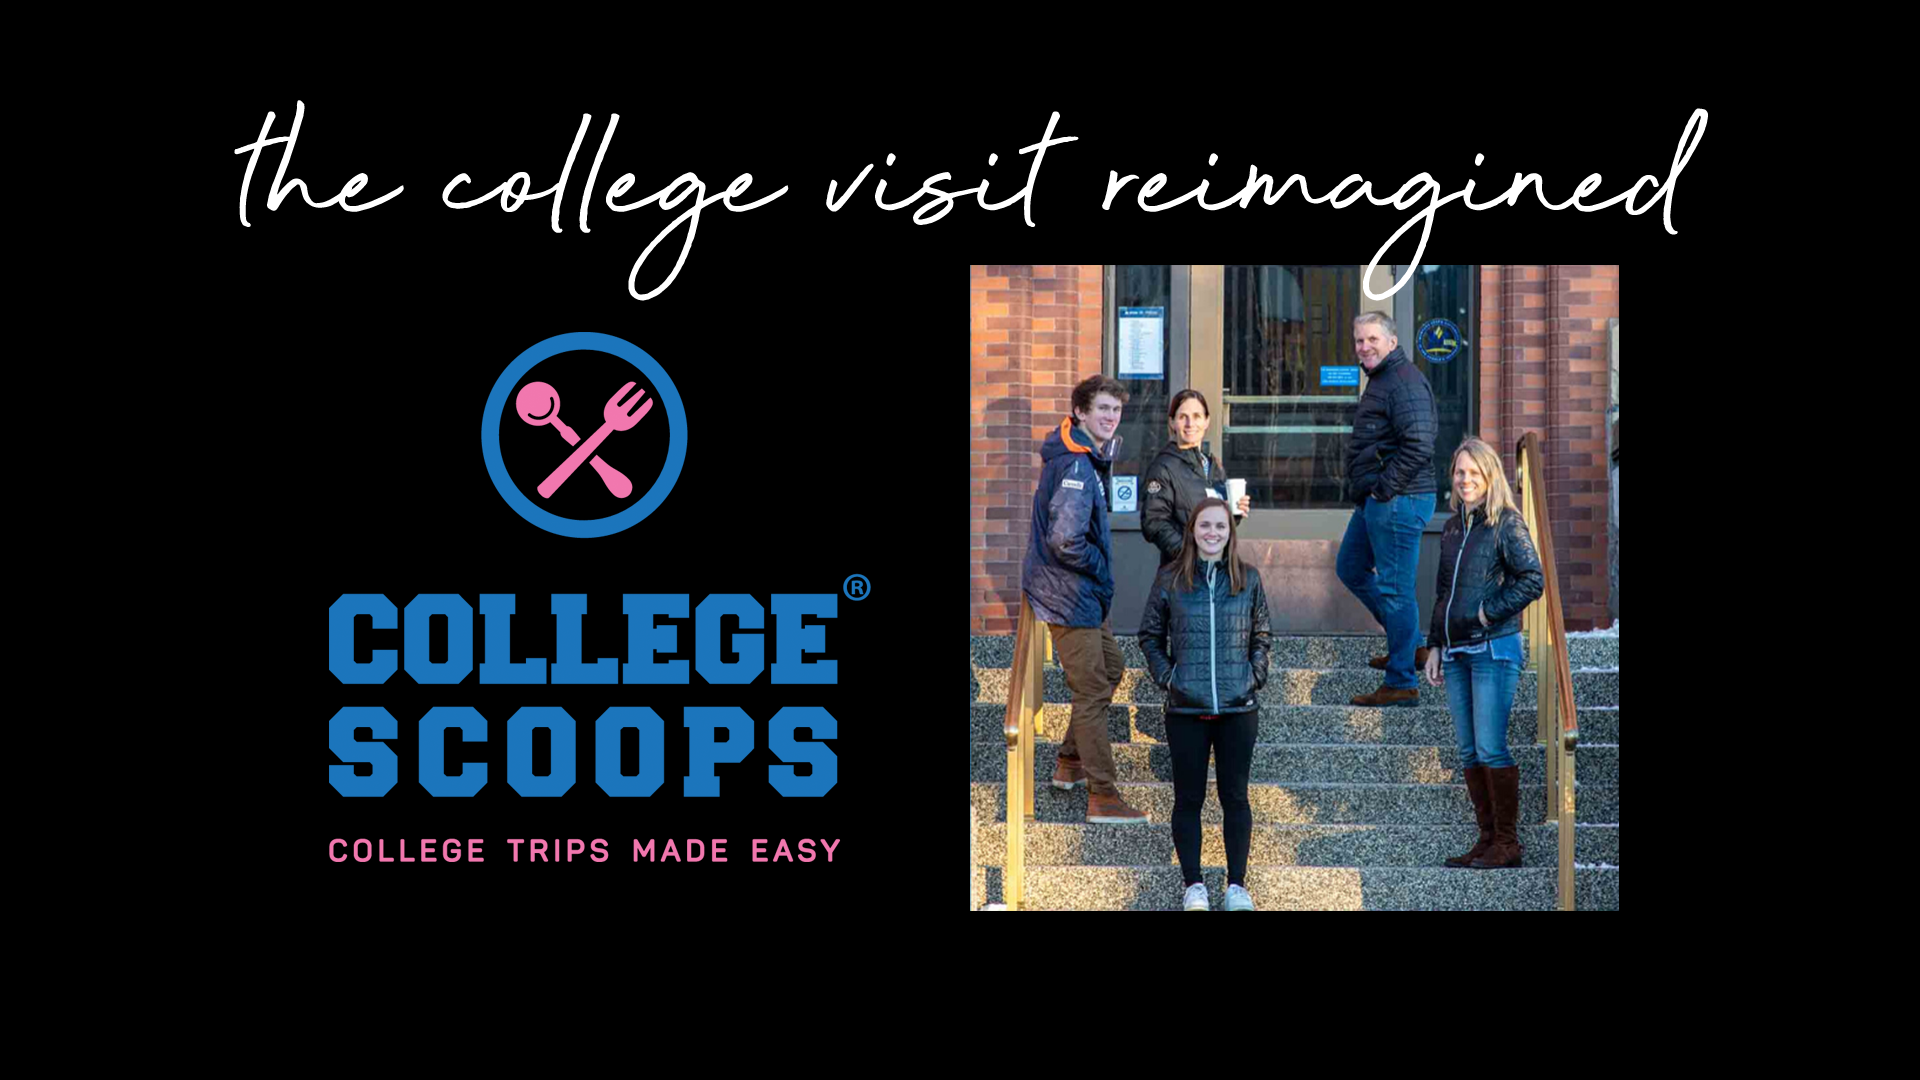 Business - College Athletic Recruiting | College Scoops